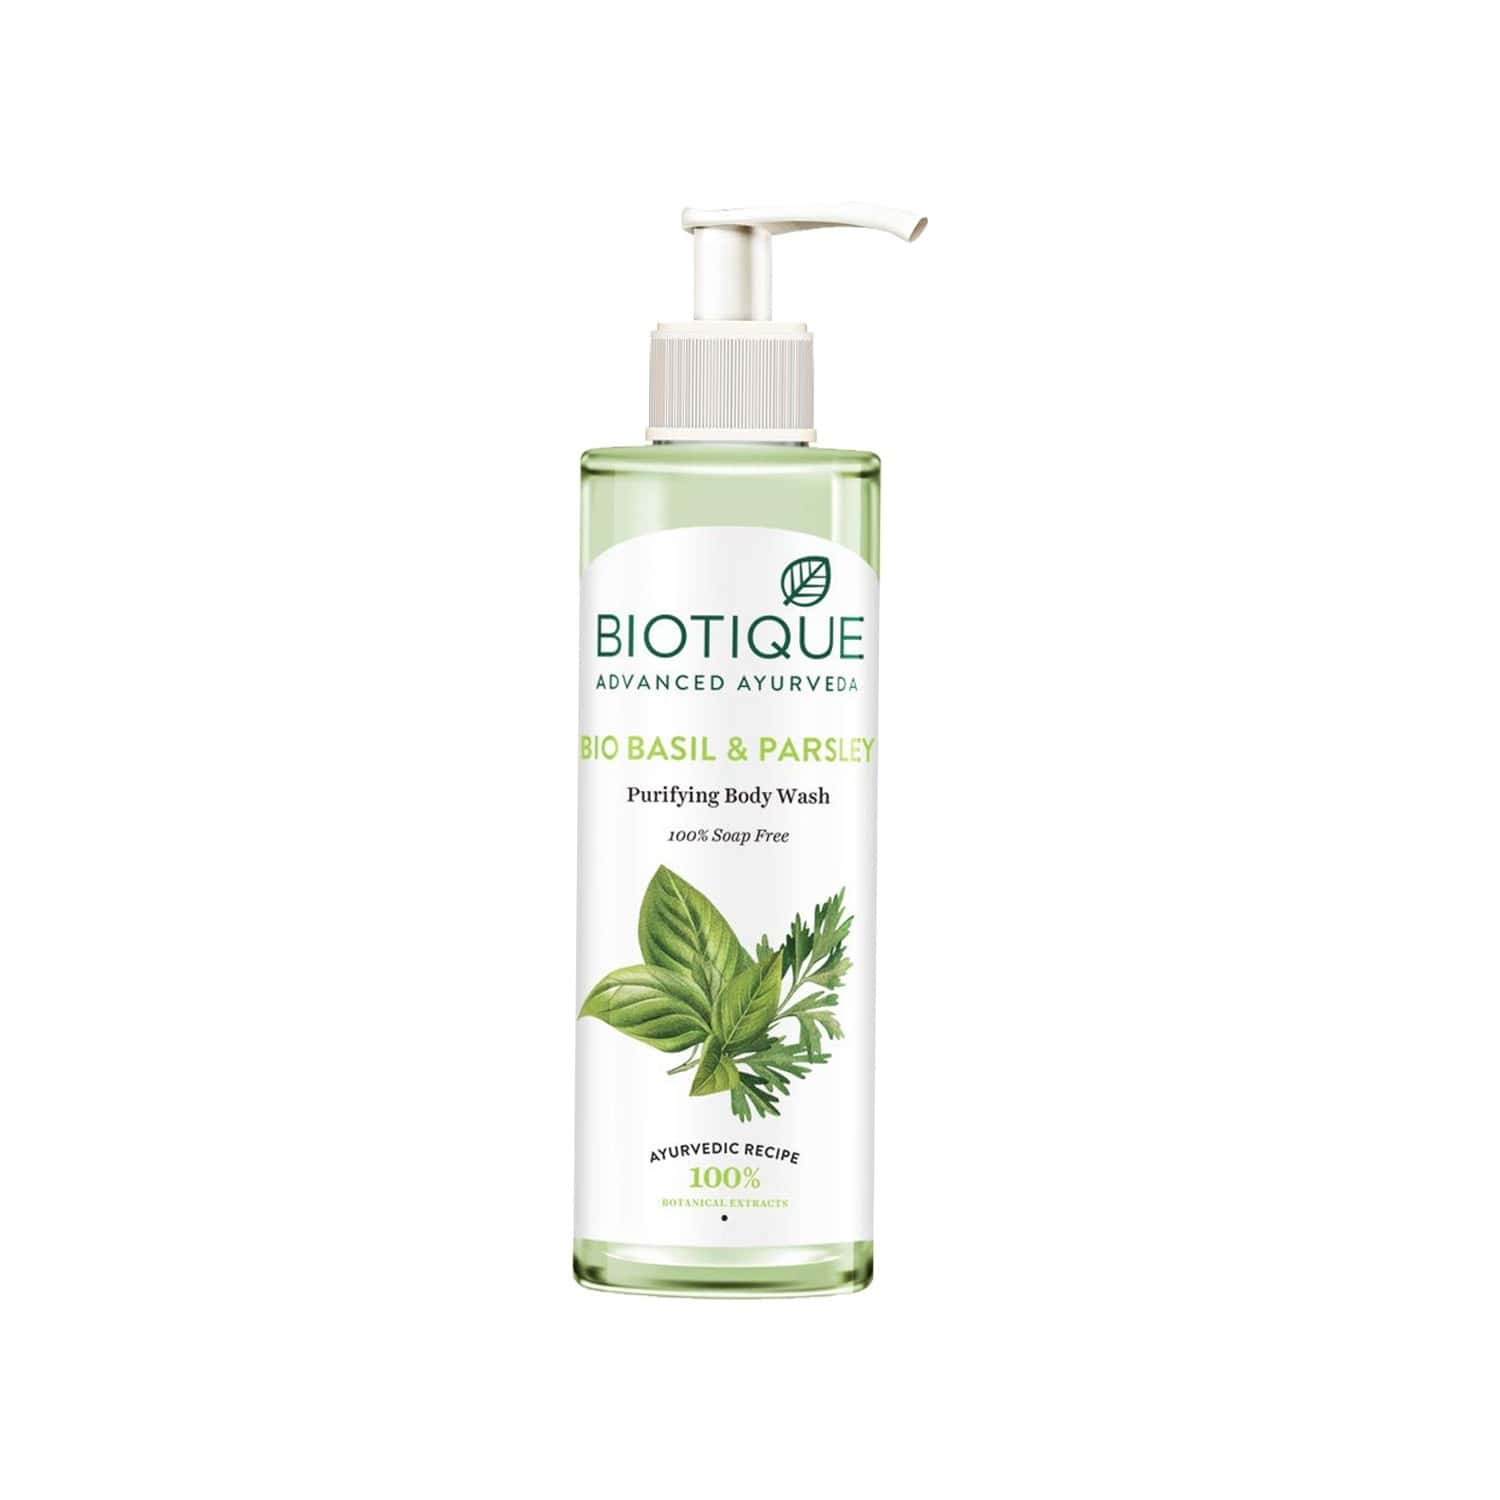 Biotique Bio Basil & Parsley Purifying Body Wash - 200 Ml